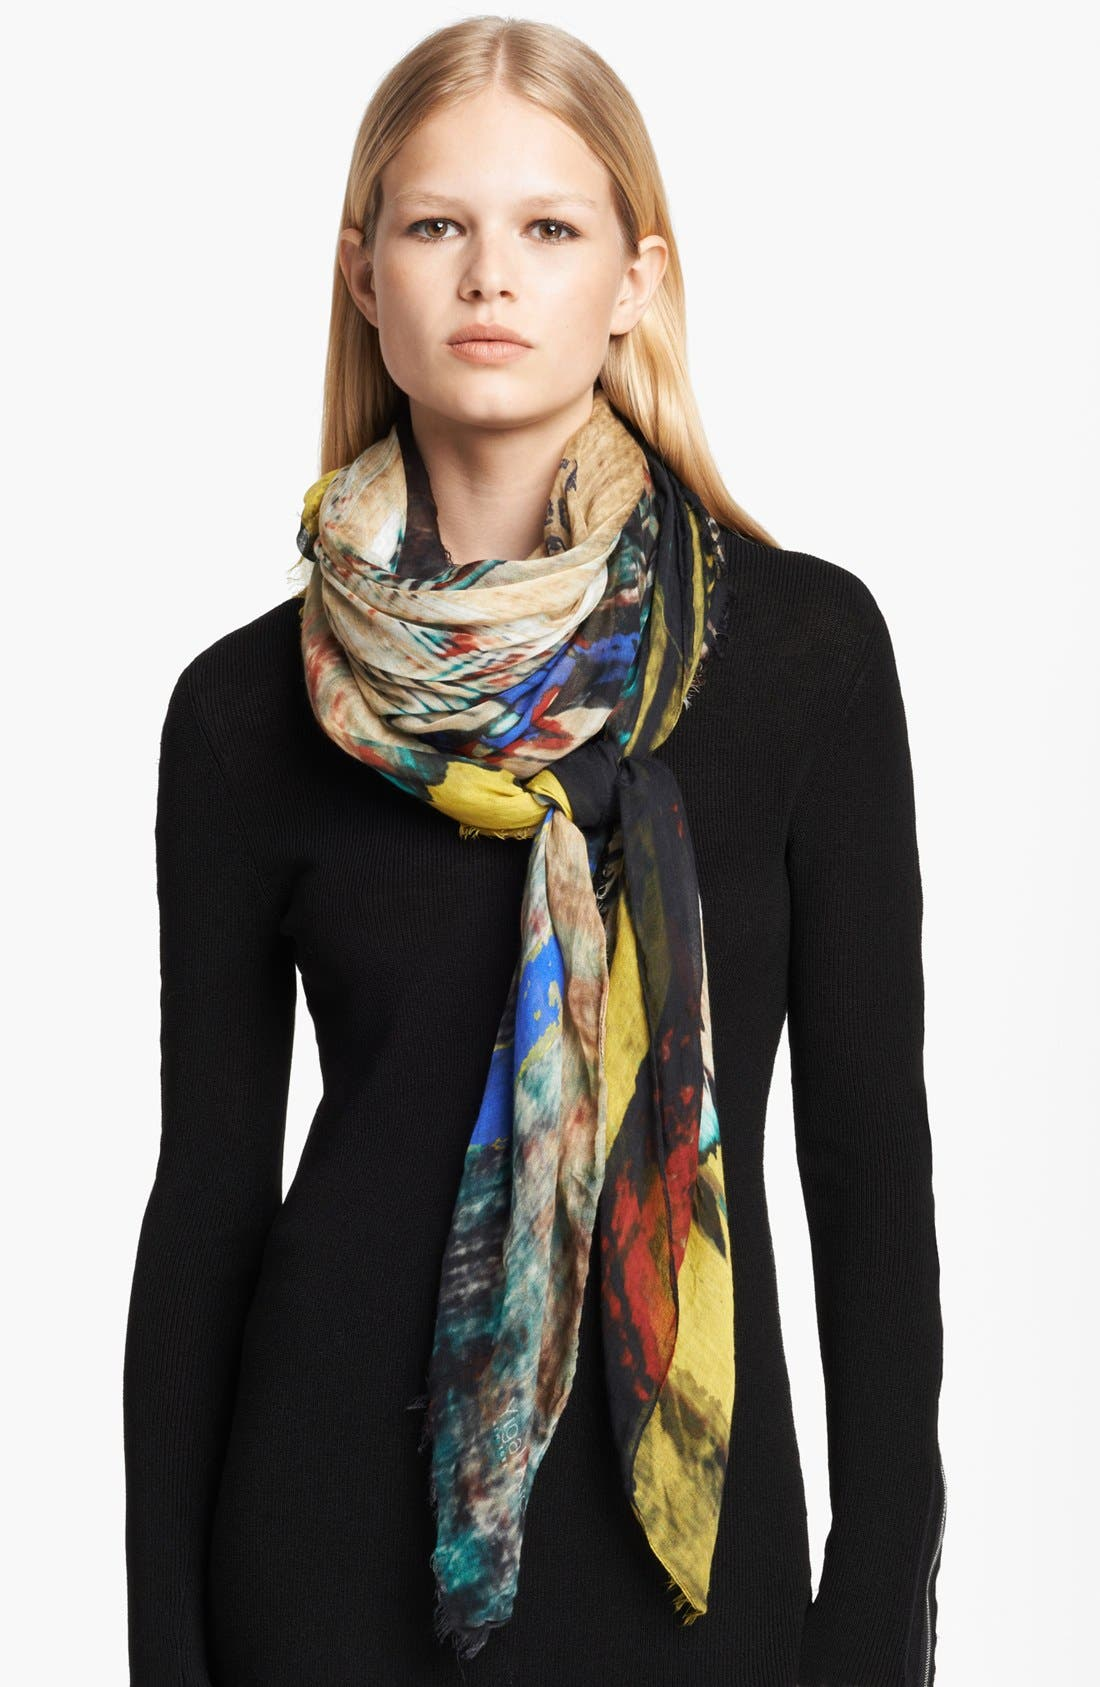 Alternate Image 1 Selected - Yigal Azrouël 'City Lion' Modal & Cashmere Scarf